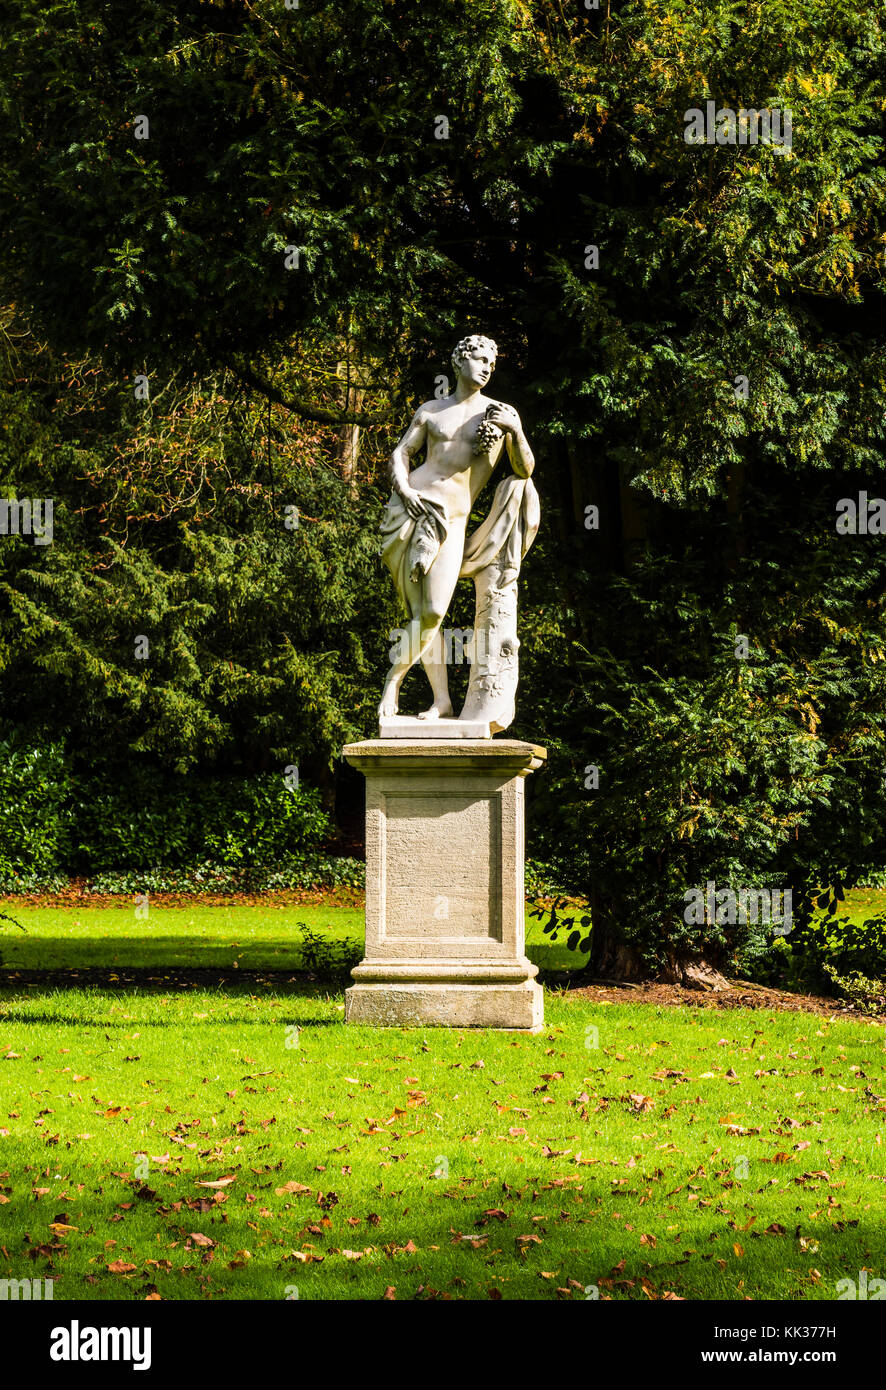 Statue in the grounds at Waddesdon Manor, Buckinghamshire, UK - Stock Image